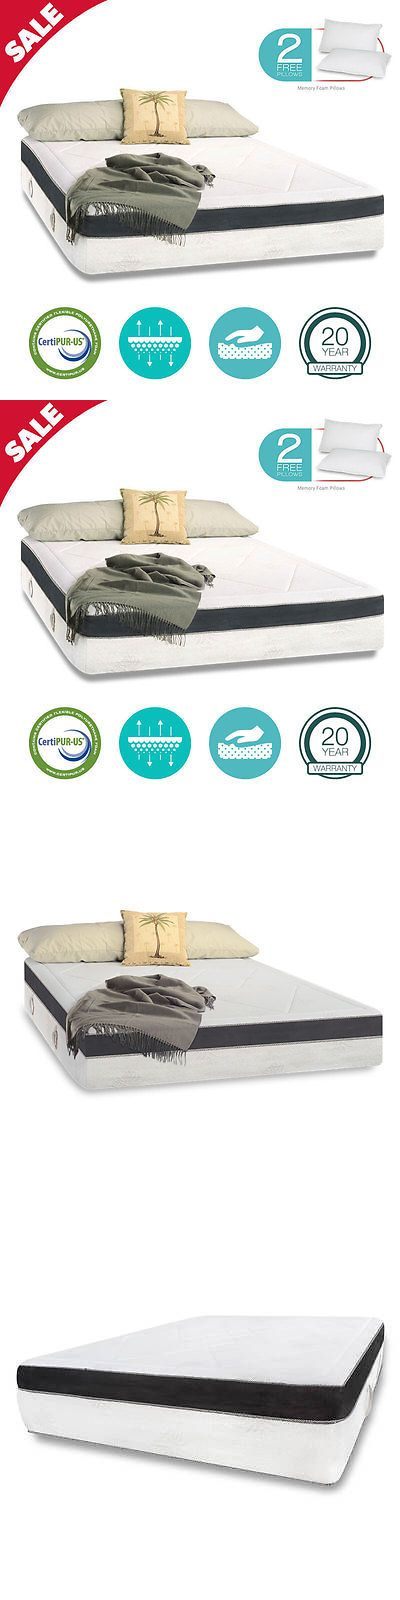 Mattresses 131588: 15 King Size Medium-Firm Cool Aloe Gel Memory Foam Mattress Free Pillows Cover -> BUY IT NOW ONLY: $689.99 on eBay!